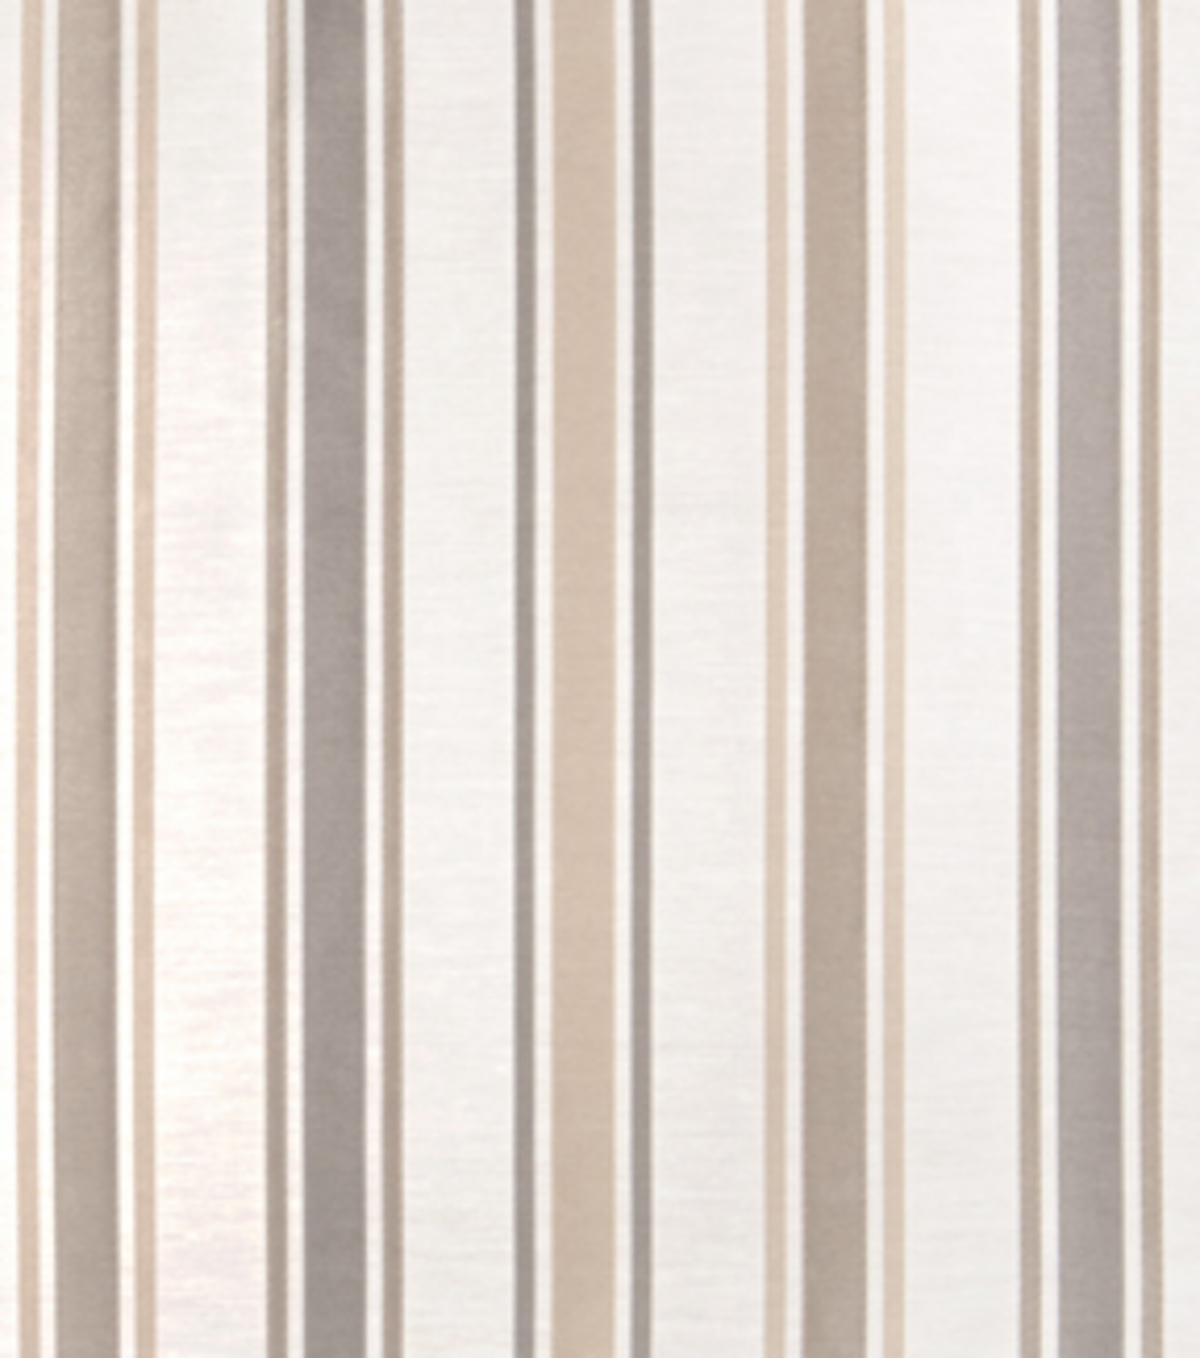 Home Decor 8\u0022x8\u0022 Fabric Swatch-Print Fabric Eaton Square Janet Grey